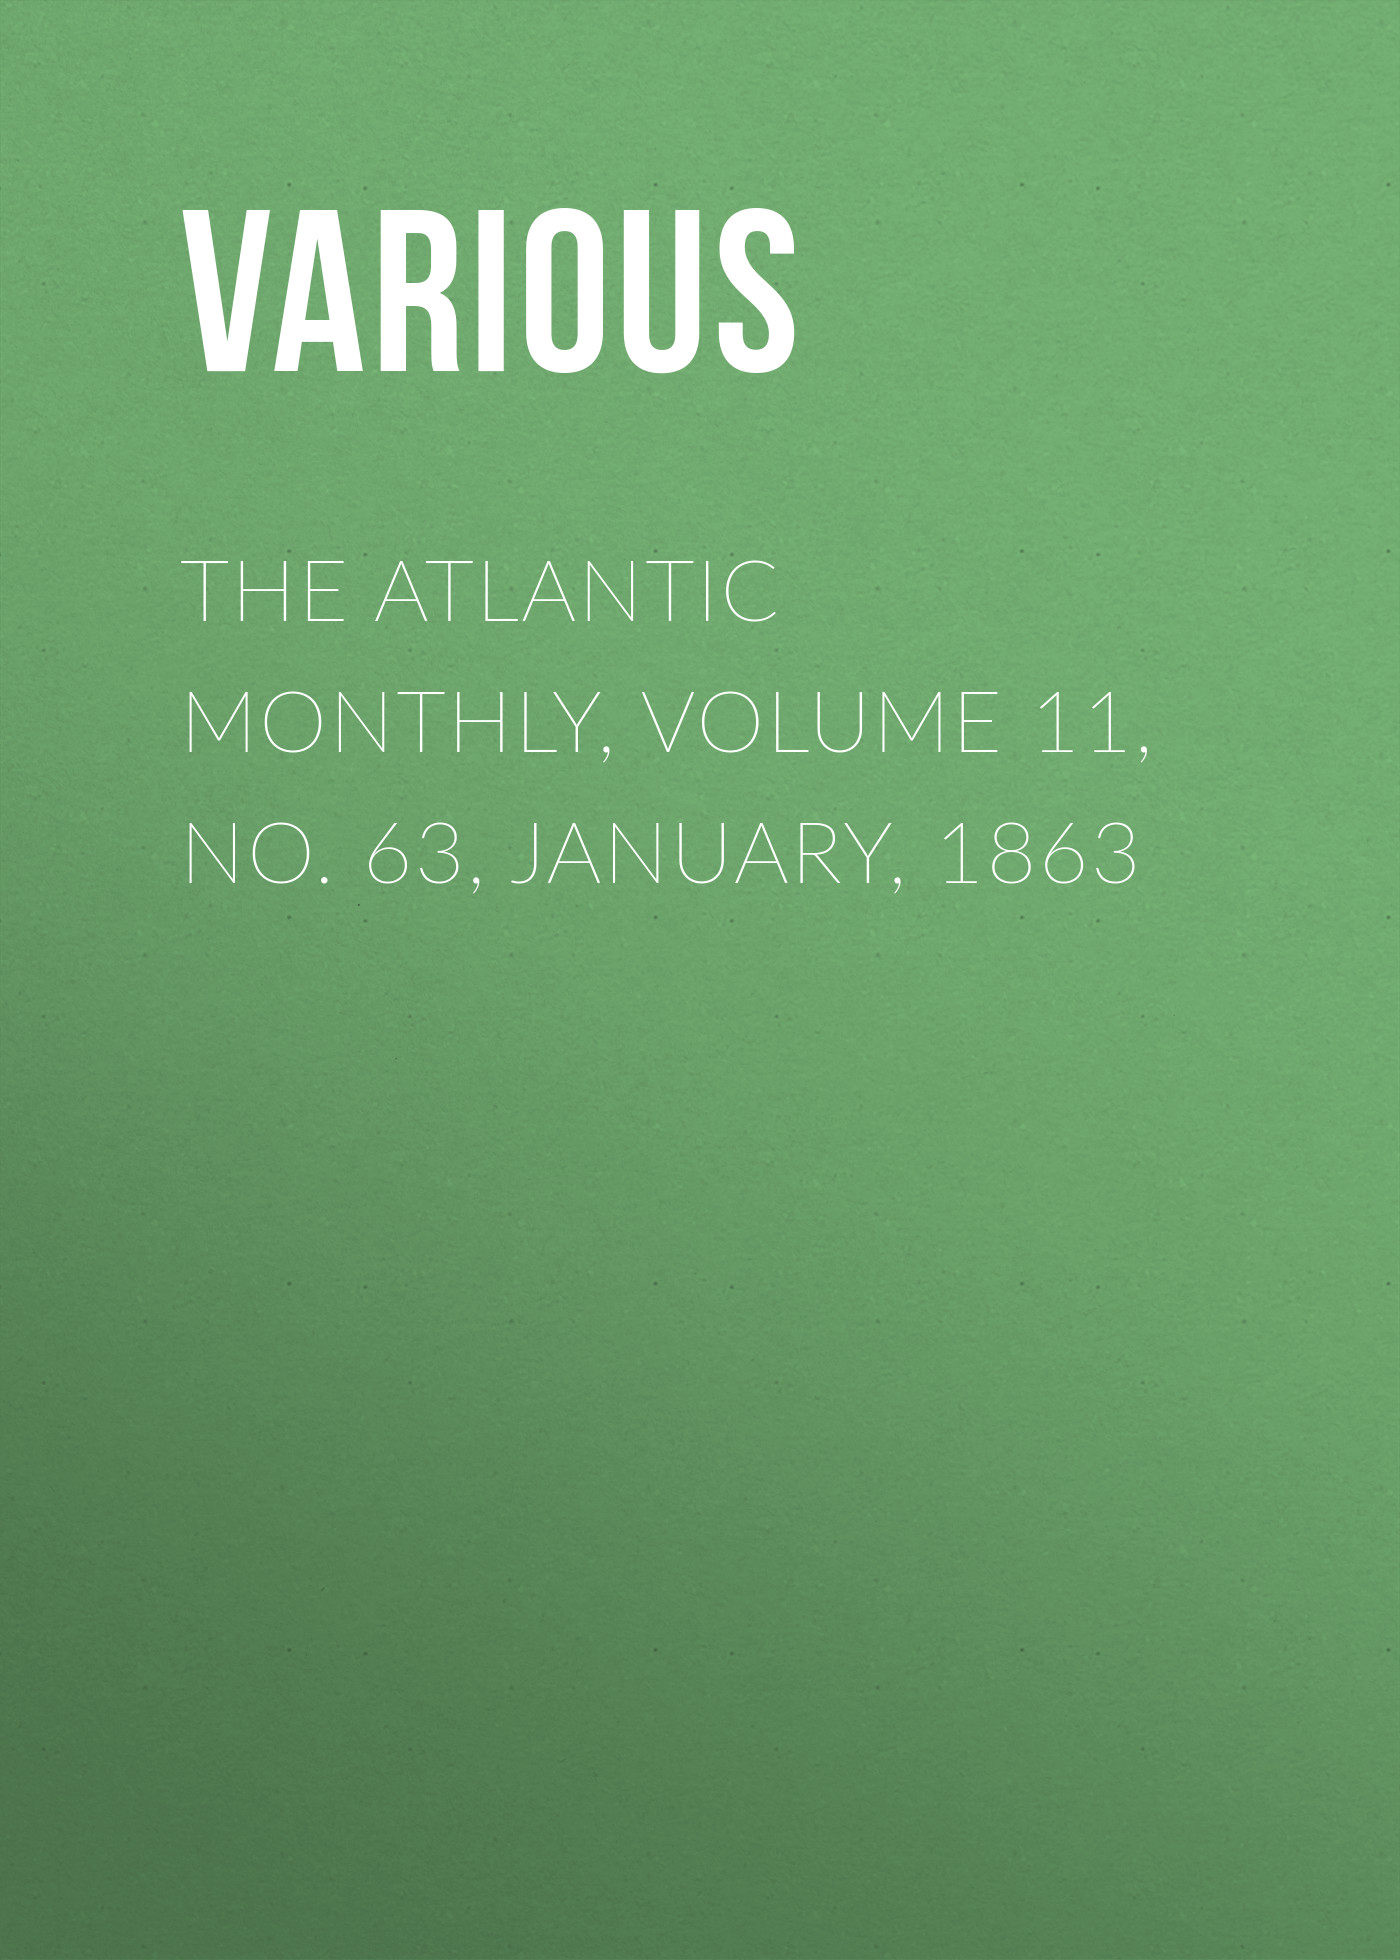 Various The Atlantic Monthly, Volume 11, No. 63, January, 1863 various the atlantic monthly volume 11 no 63 january 1863